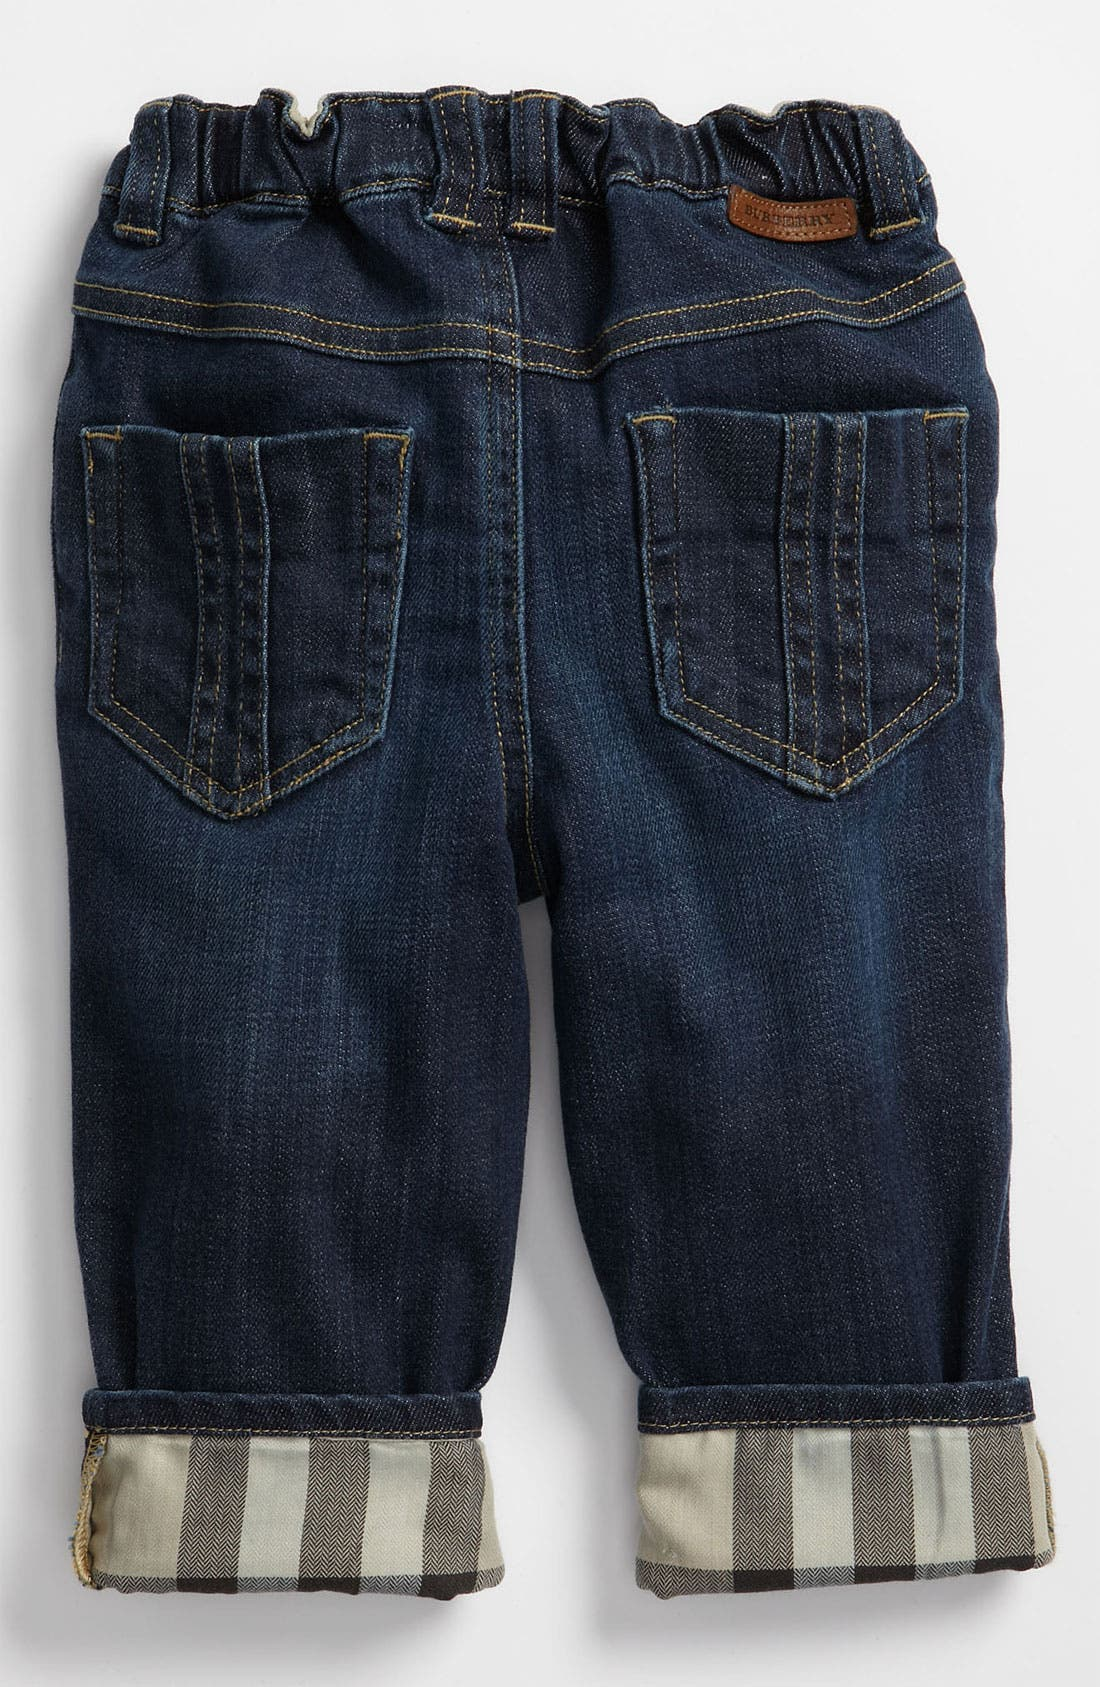 Main Image - Burberry Straight Leg Jeans (Toddler)